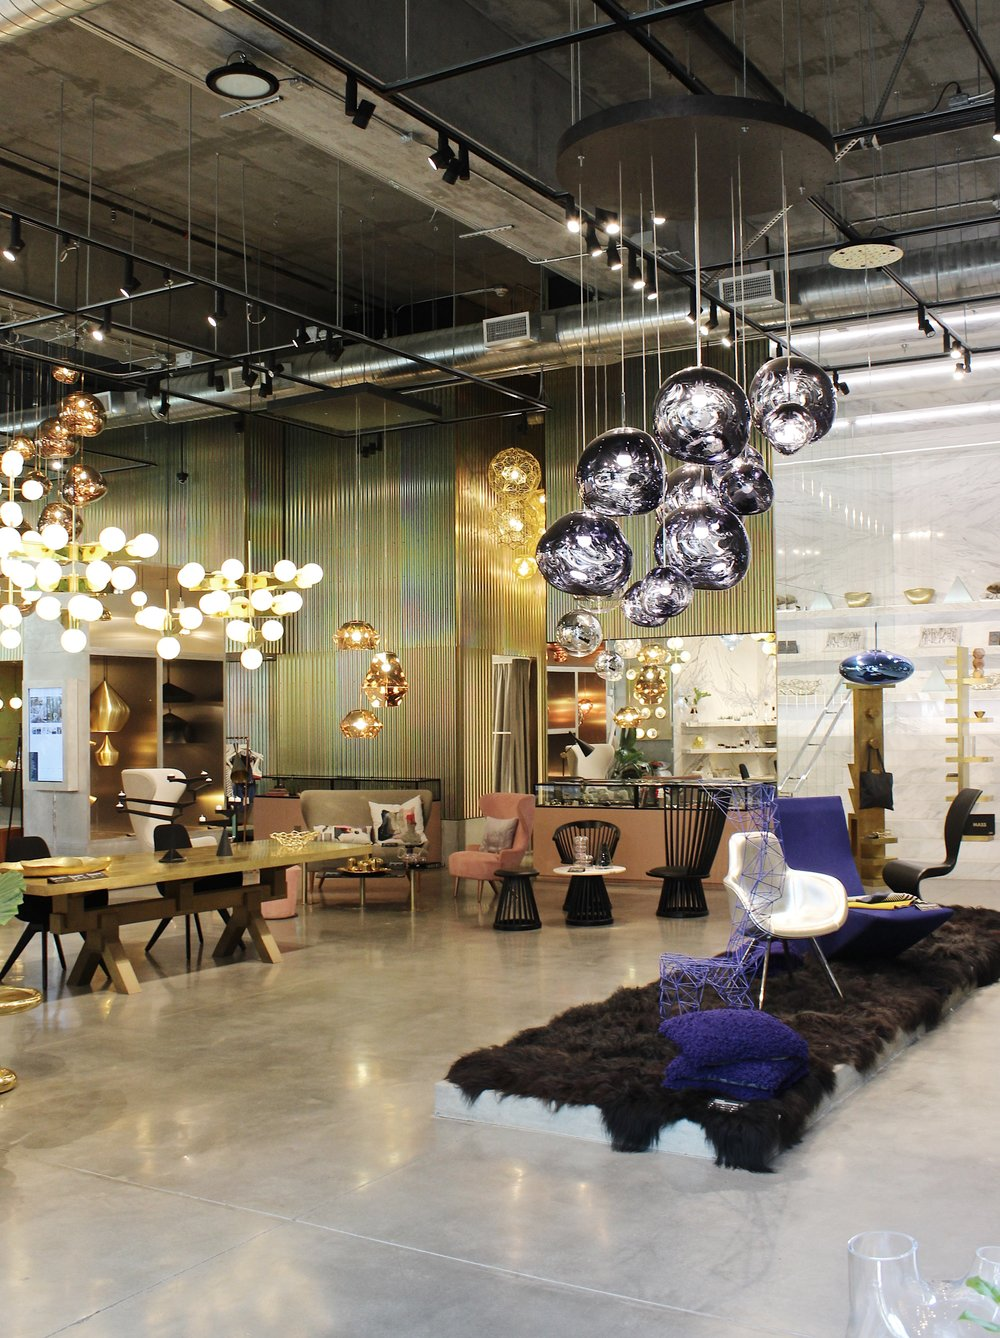 Up next,  Tom Dixon at The Shop . If you guys don't know about Tom Dixon, he's a British lighting and home decor designer. He creates the most stunning home furnishings and the aesthetic is right up my ally. I've taken countless pictures inside here because I'm always mesmerized by the decor.